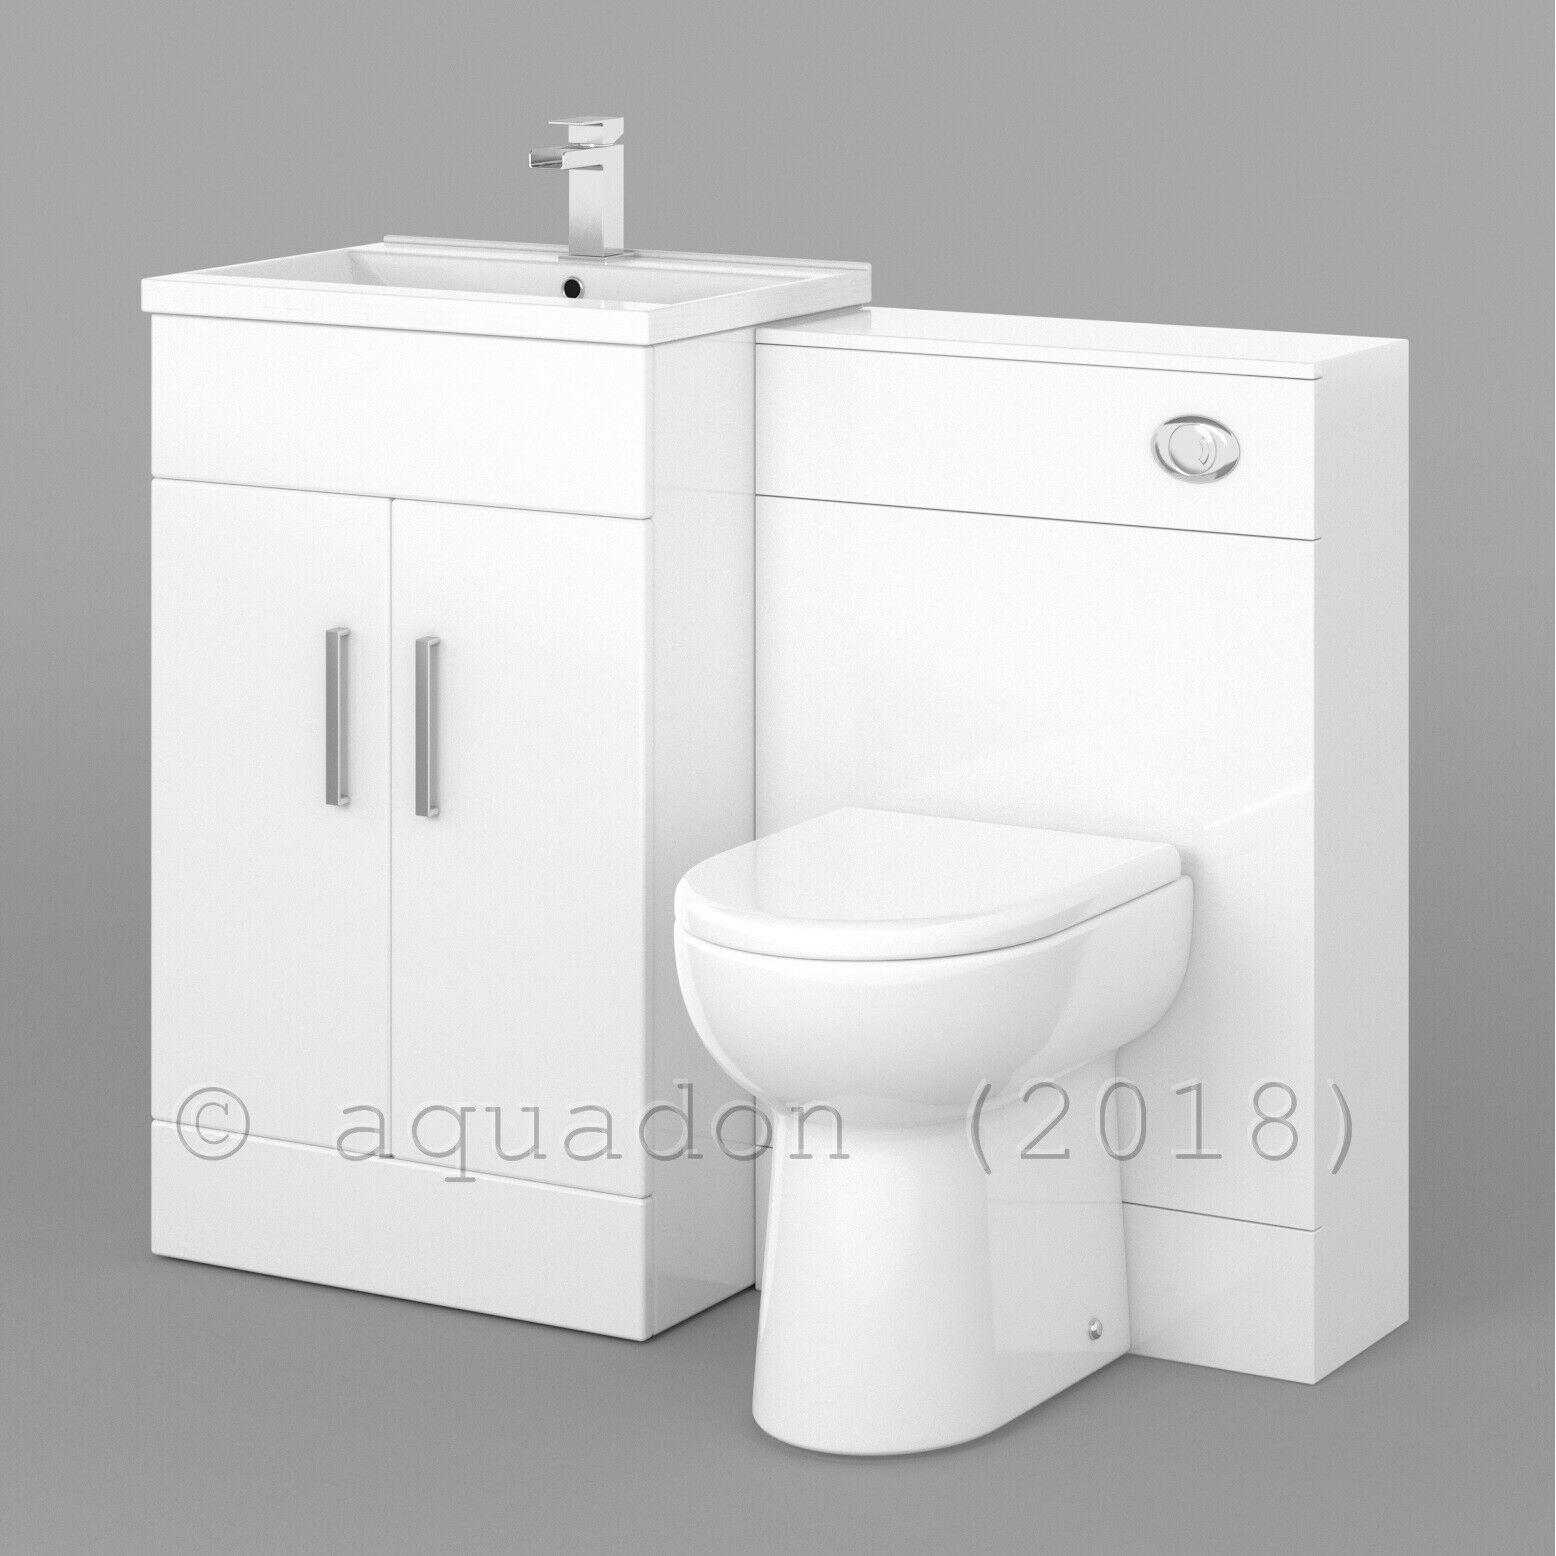 500MM WHITE VANITY Unit Basin Sink and Toilet Bathroom Furniture ...